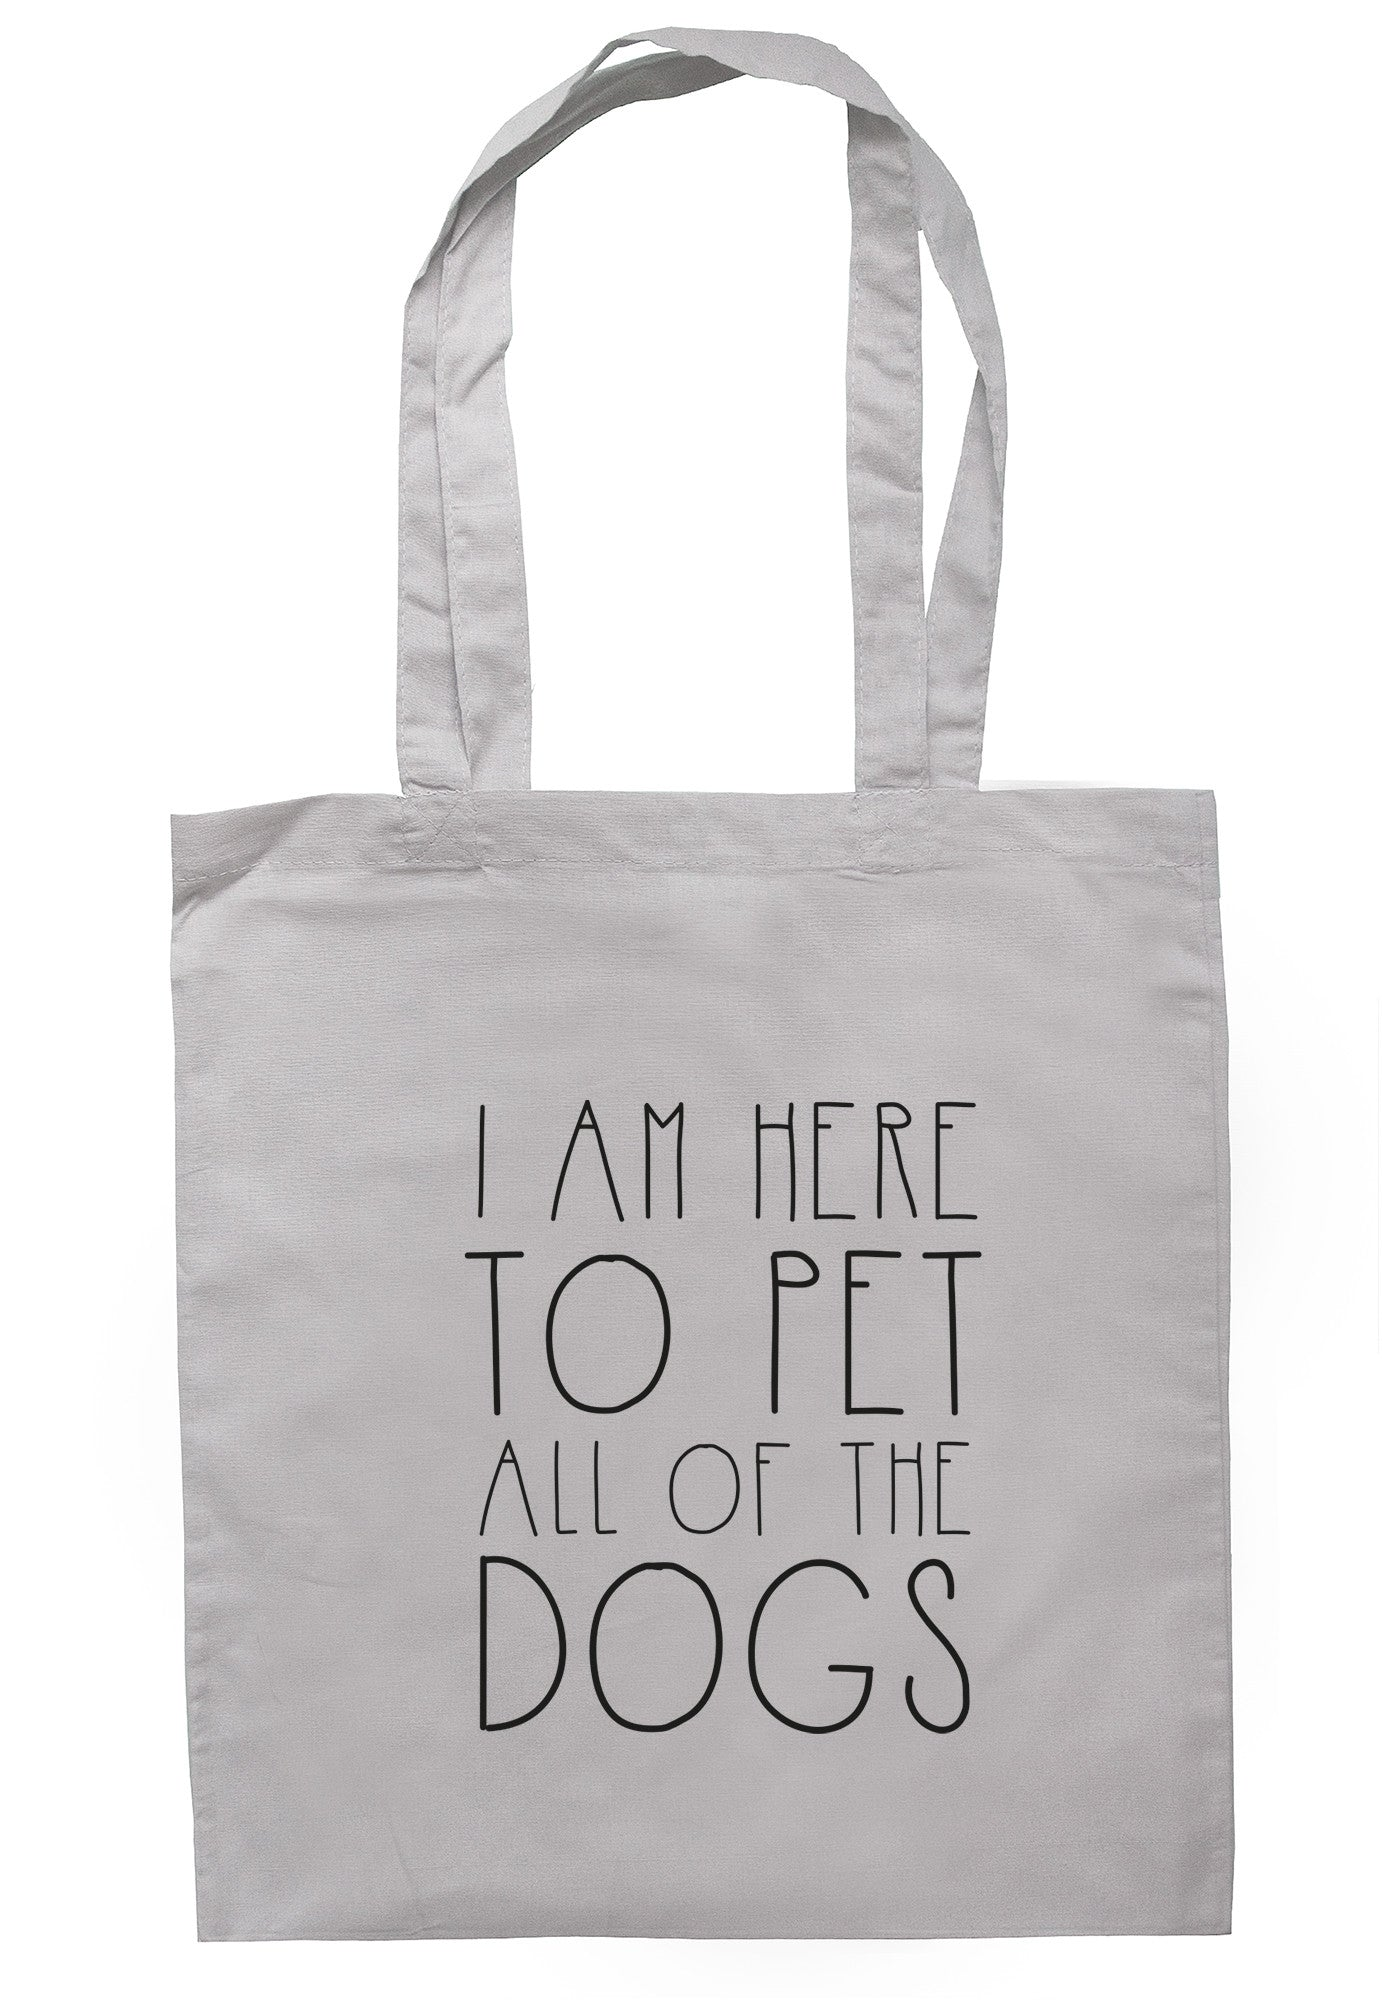 I Am Here To Pet All Of The Dogs Tote Bag TB0582 - Illustrated Identity Ltd.